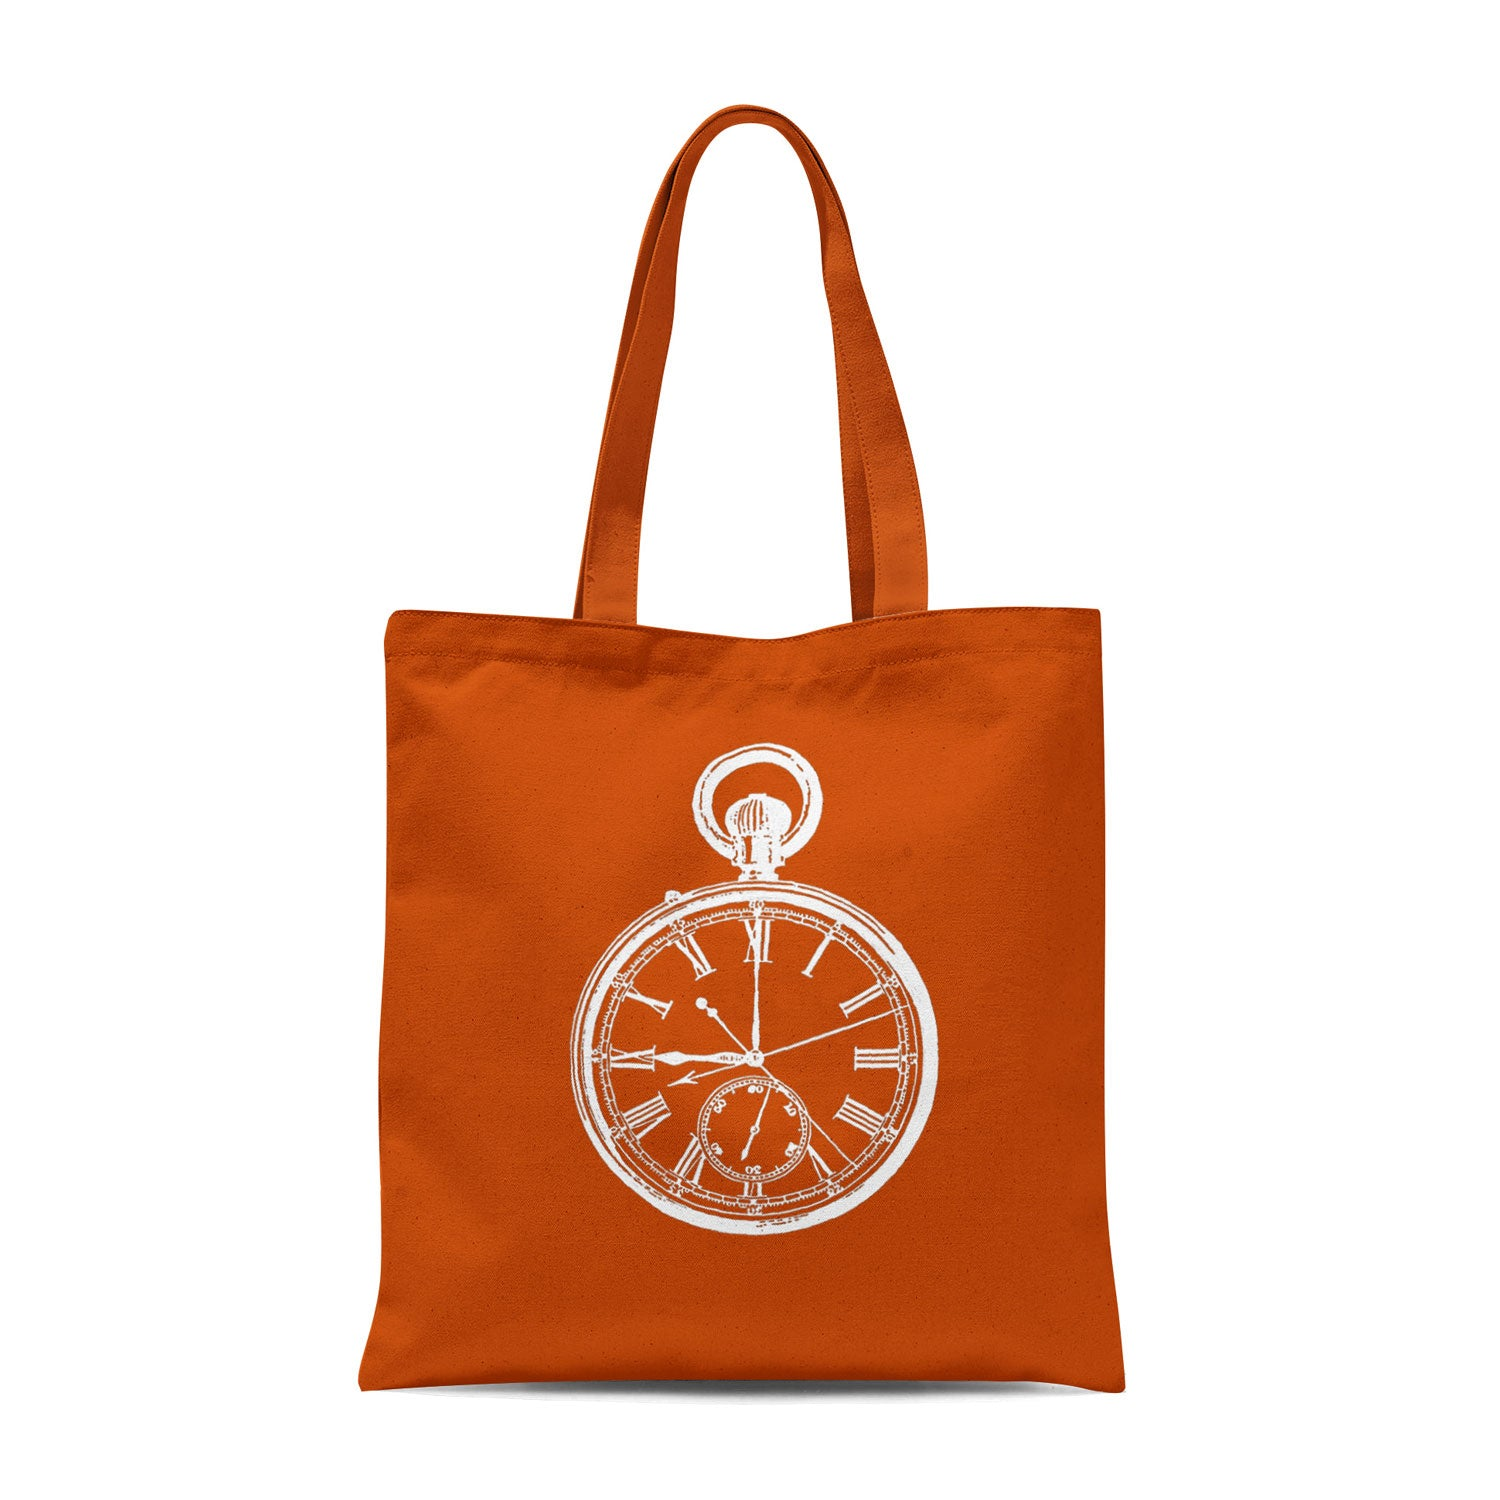 orange tote bag with white pocket watch illustration